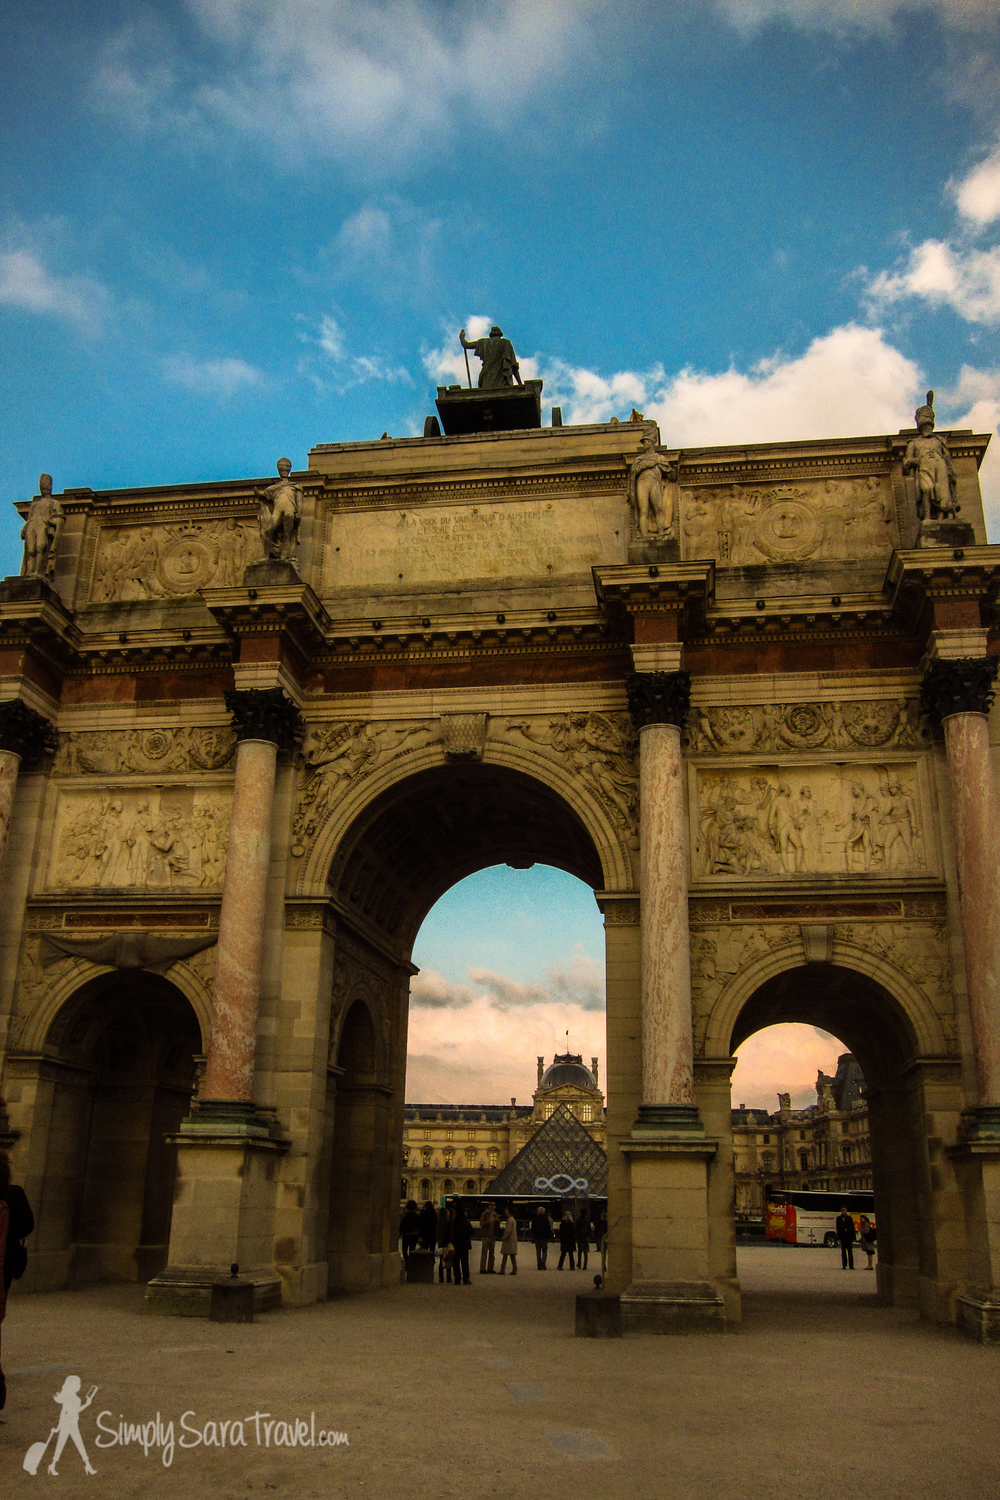 This picture of the Arc de Triomphe du Carrousel also brings back memories of the walk back to our apartment where my surprise birthday party was about to begin. Michael had to try to spur me along despite all the pictures I wanted to take on the walk back!